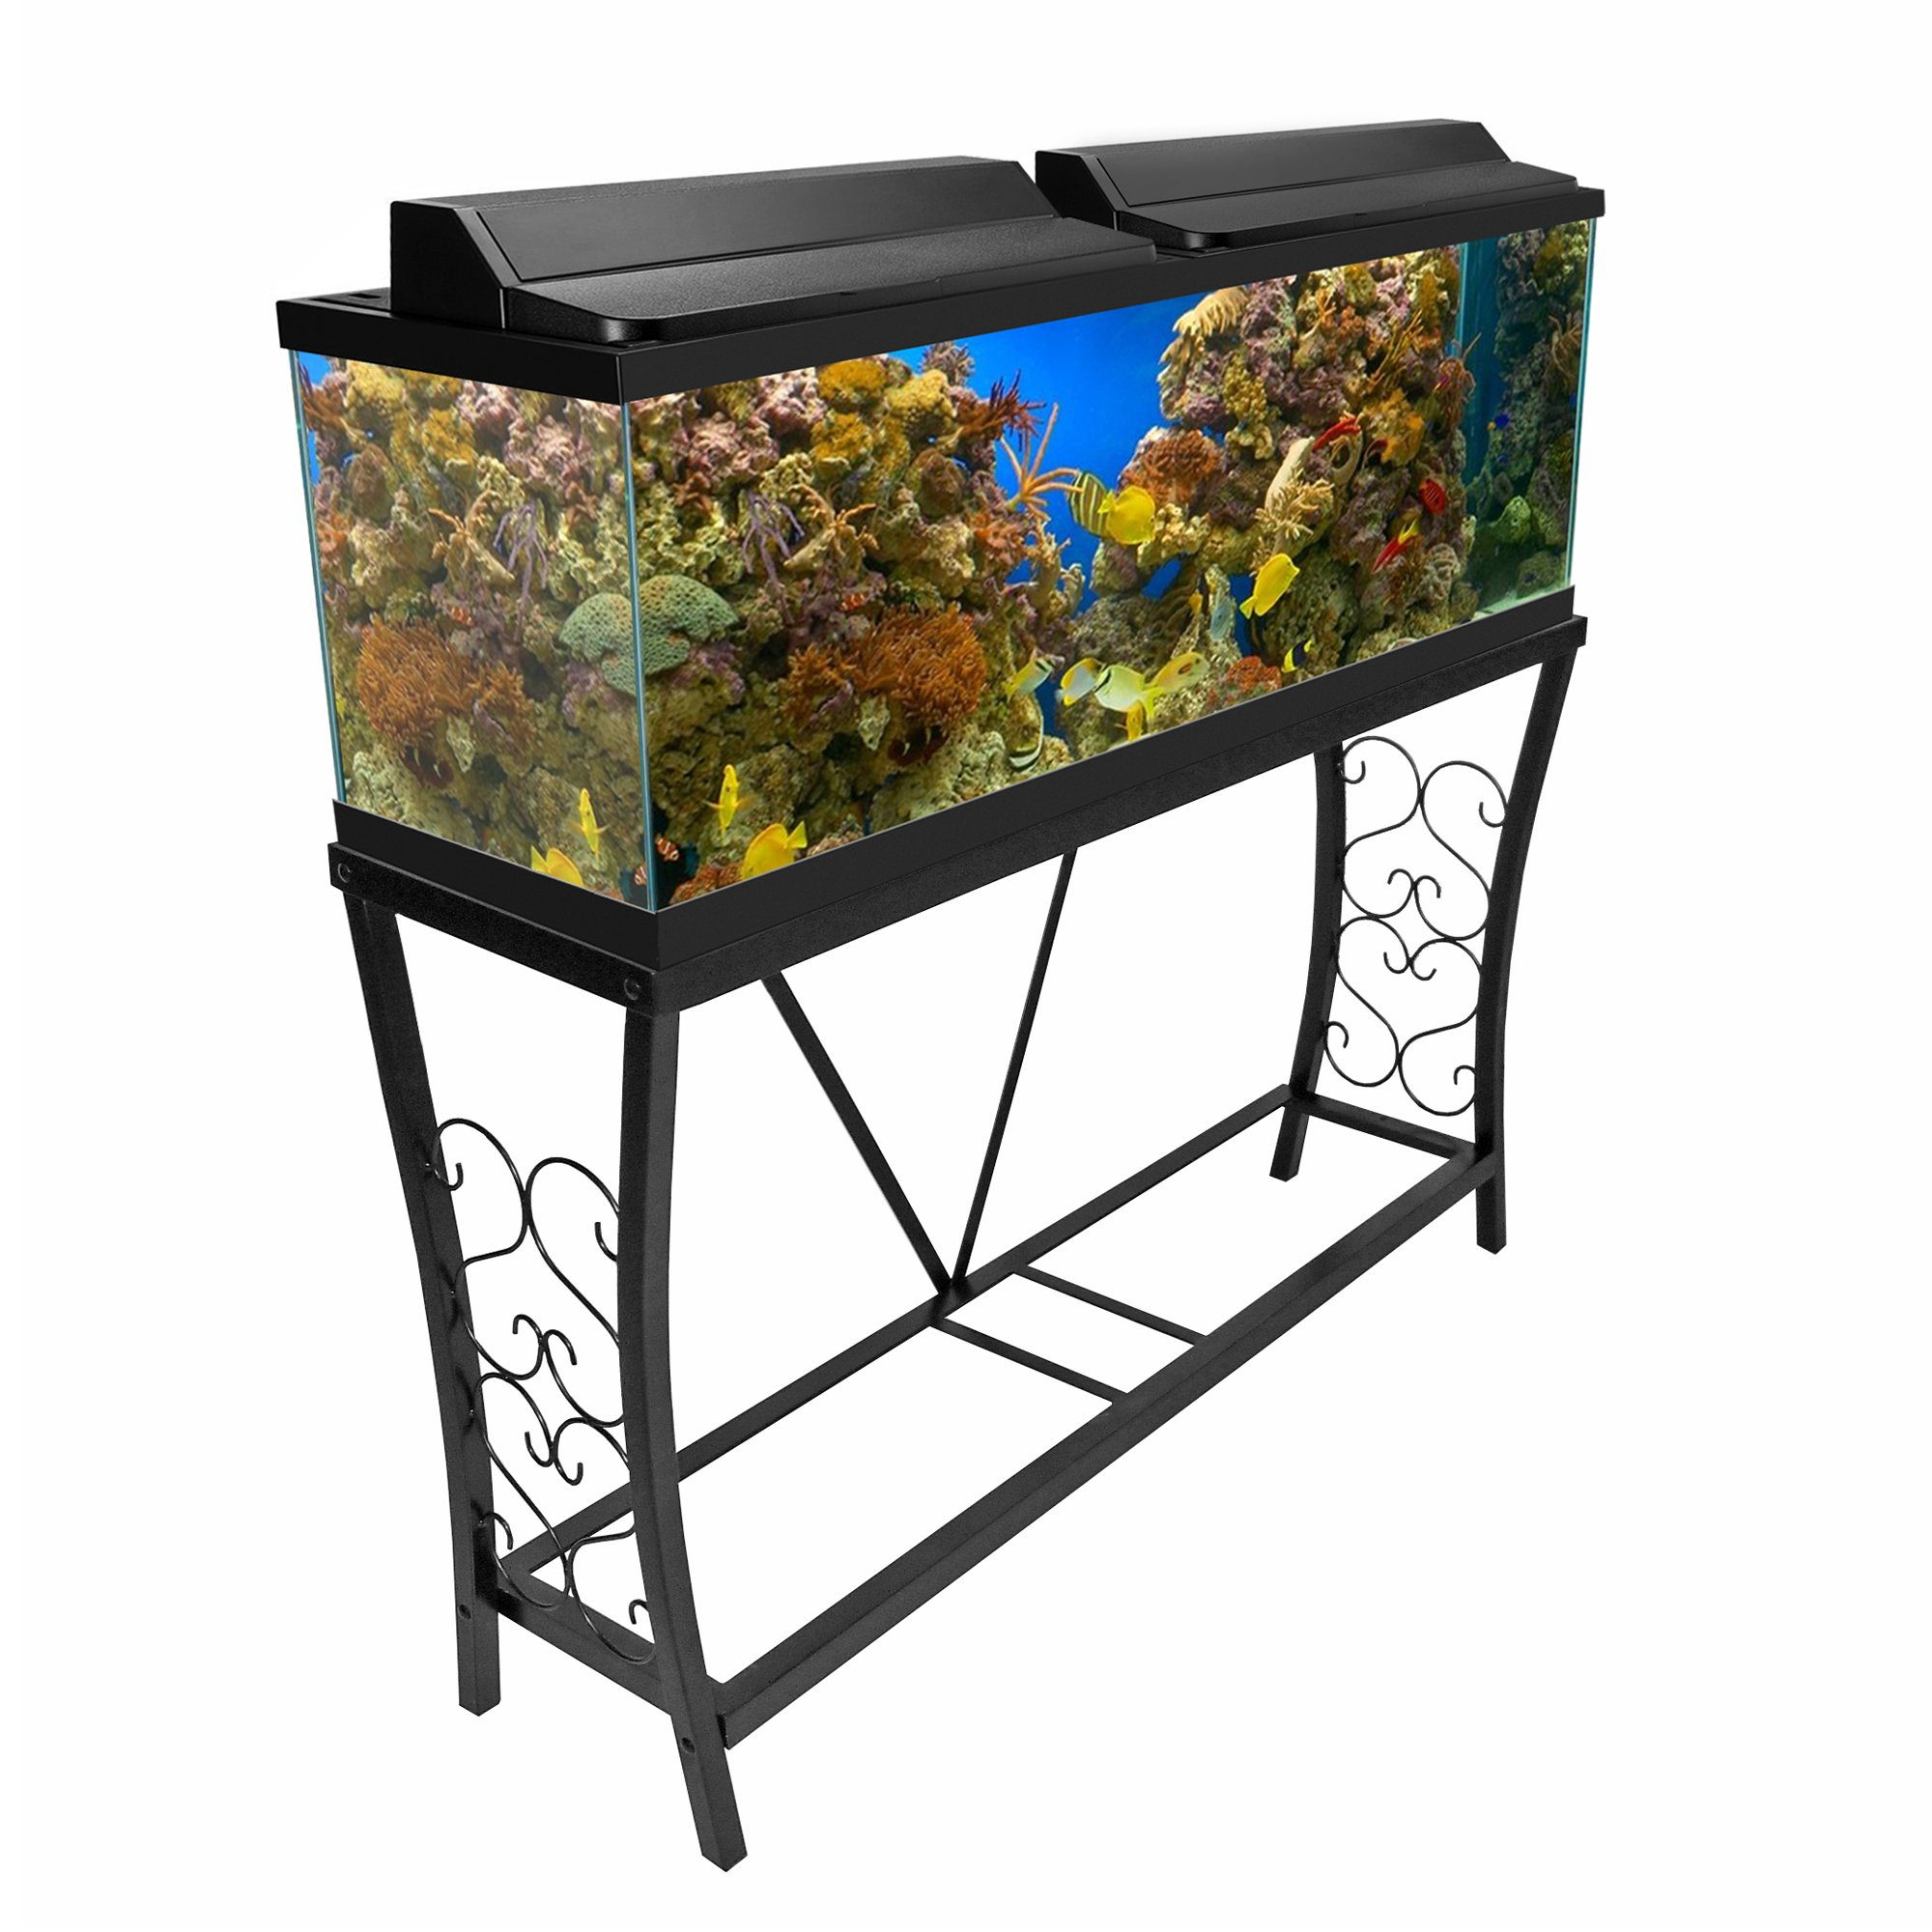 Aquatic fundamentals black scroll aquarium stand 55 for 55 gallon fish tank petco